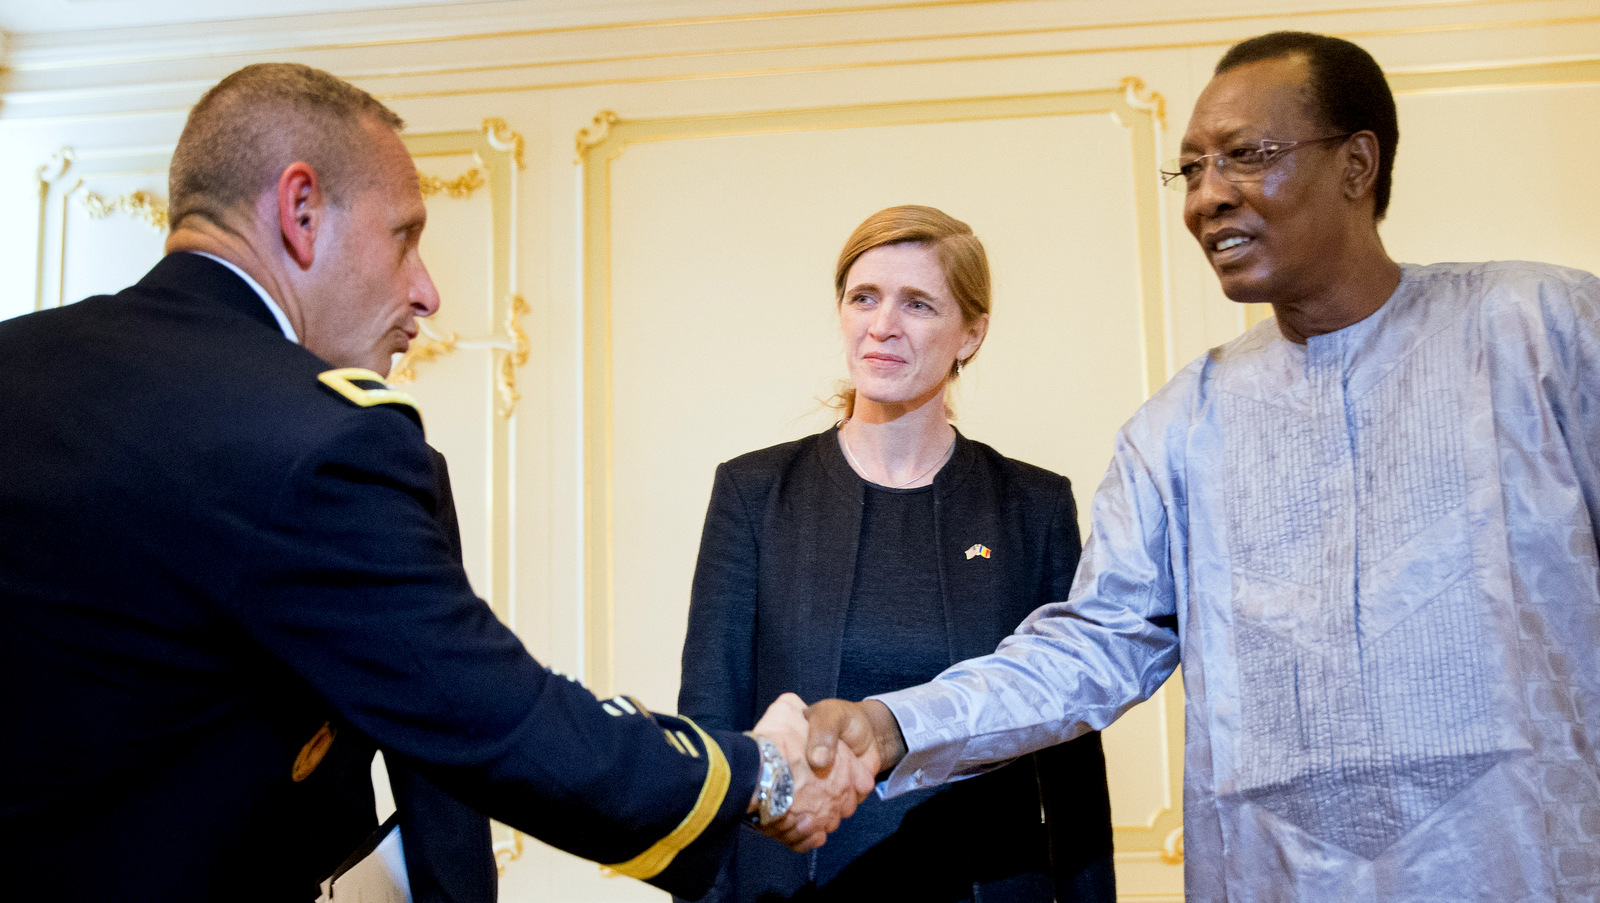 United States Special Operations Command Africa Commander Brig. Gen. Donald Bolduc, left, accompanied by U.S. Ambassador to the United Nations Samantha Power, center, meets with President Idriss Deby Itno, right, at the presidential palace in N'Djamena, Chad, Wednesday, April 20, 2016. Power was traveling to Cameroon, Chad, and Nigeria to highlight the growing threat Boko Haram poses to the Lake Chad Basin region. (AP/Andrew Harnik)